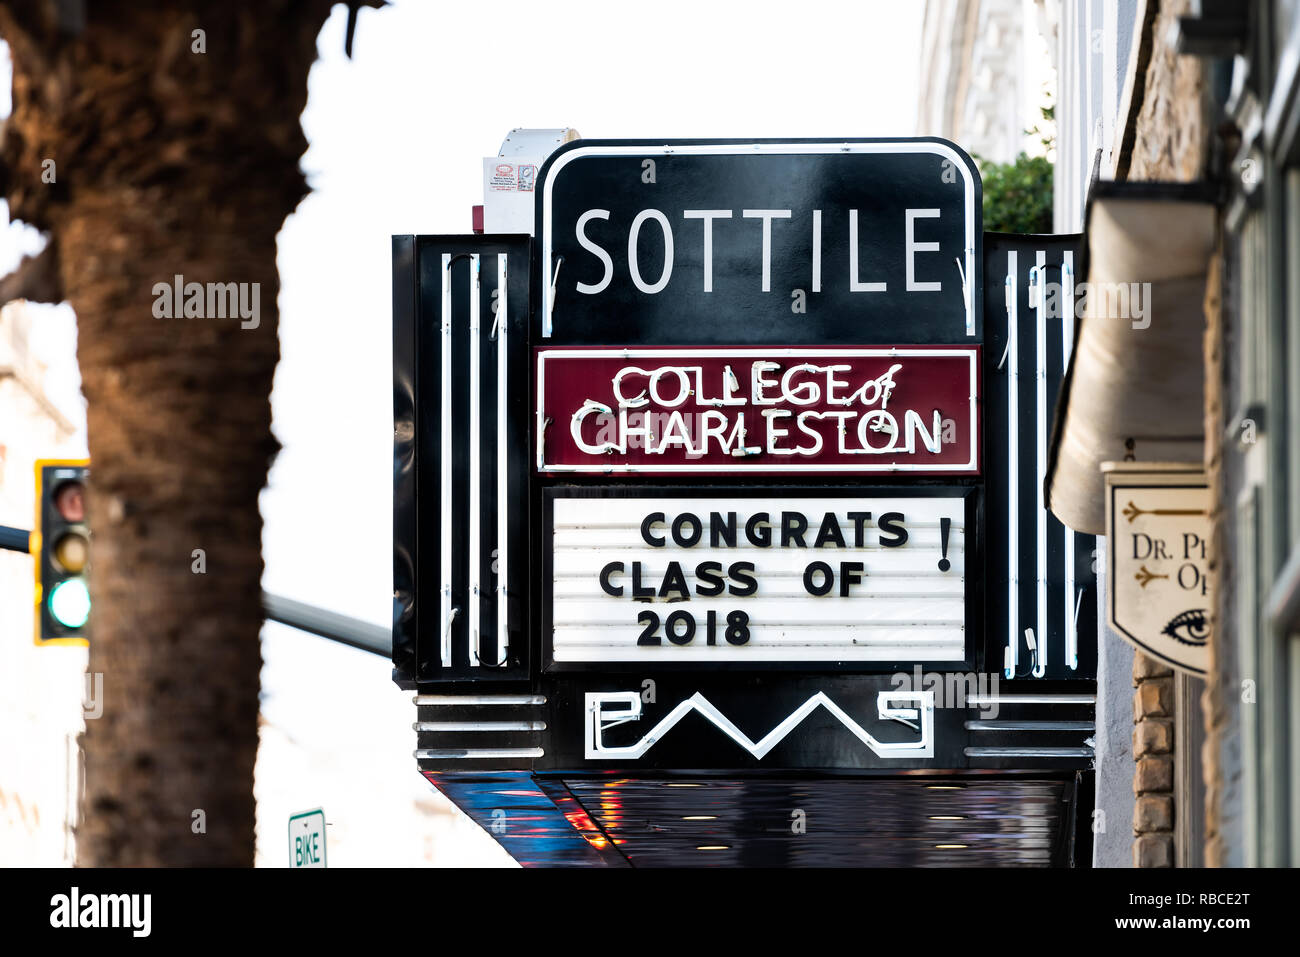 Charleston, USA - May 12, 2018: Downtown city King street in South Carolina with closeup of Sottile theatre and College of Charleston graduation sign - Stock Image